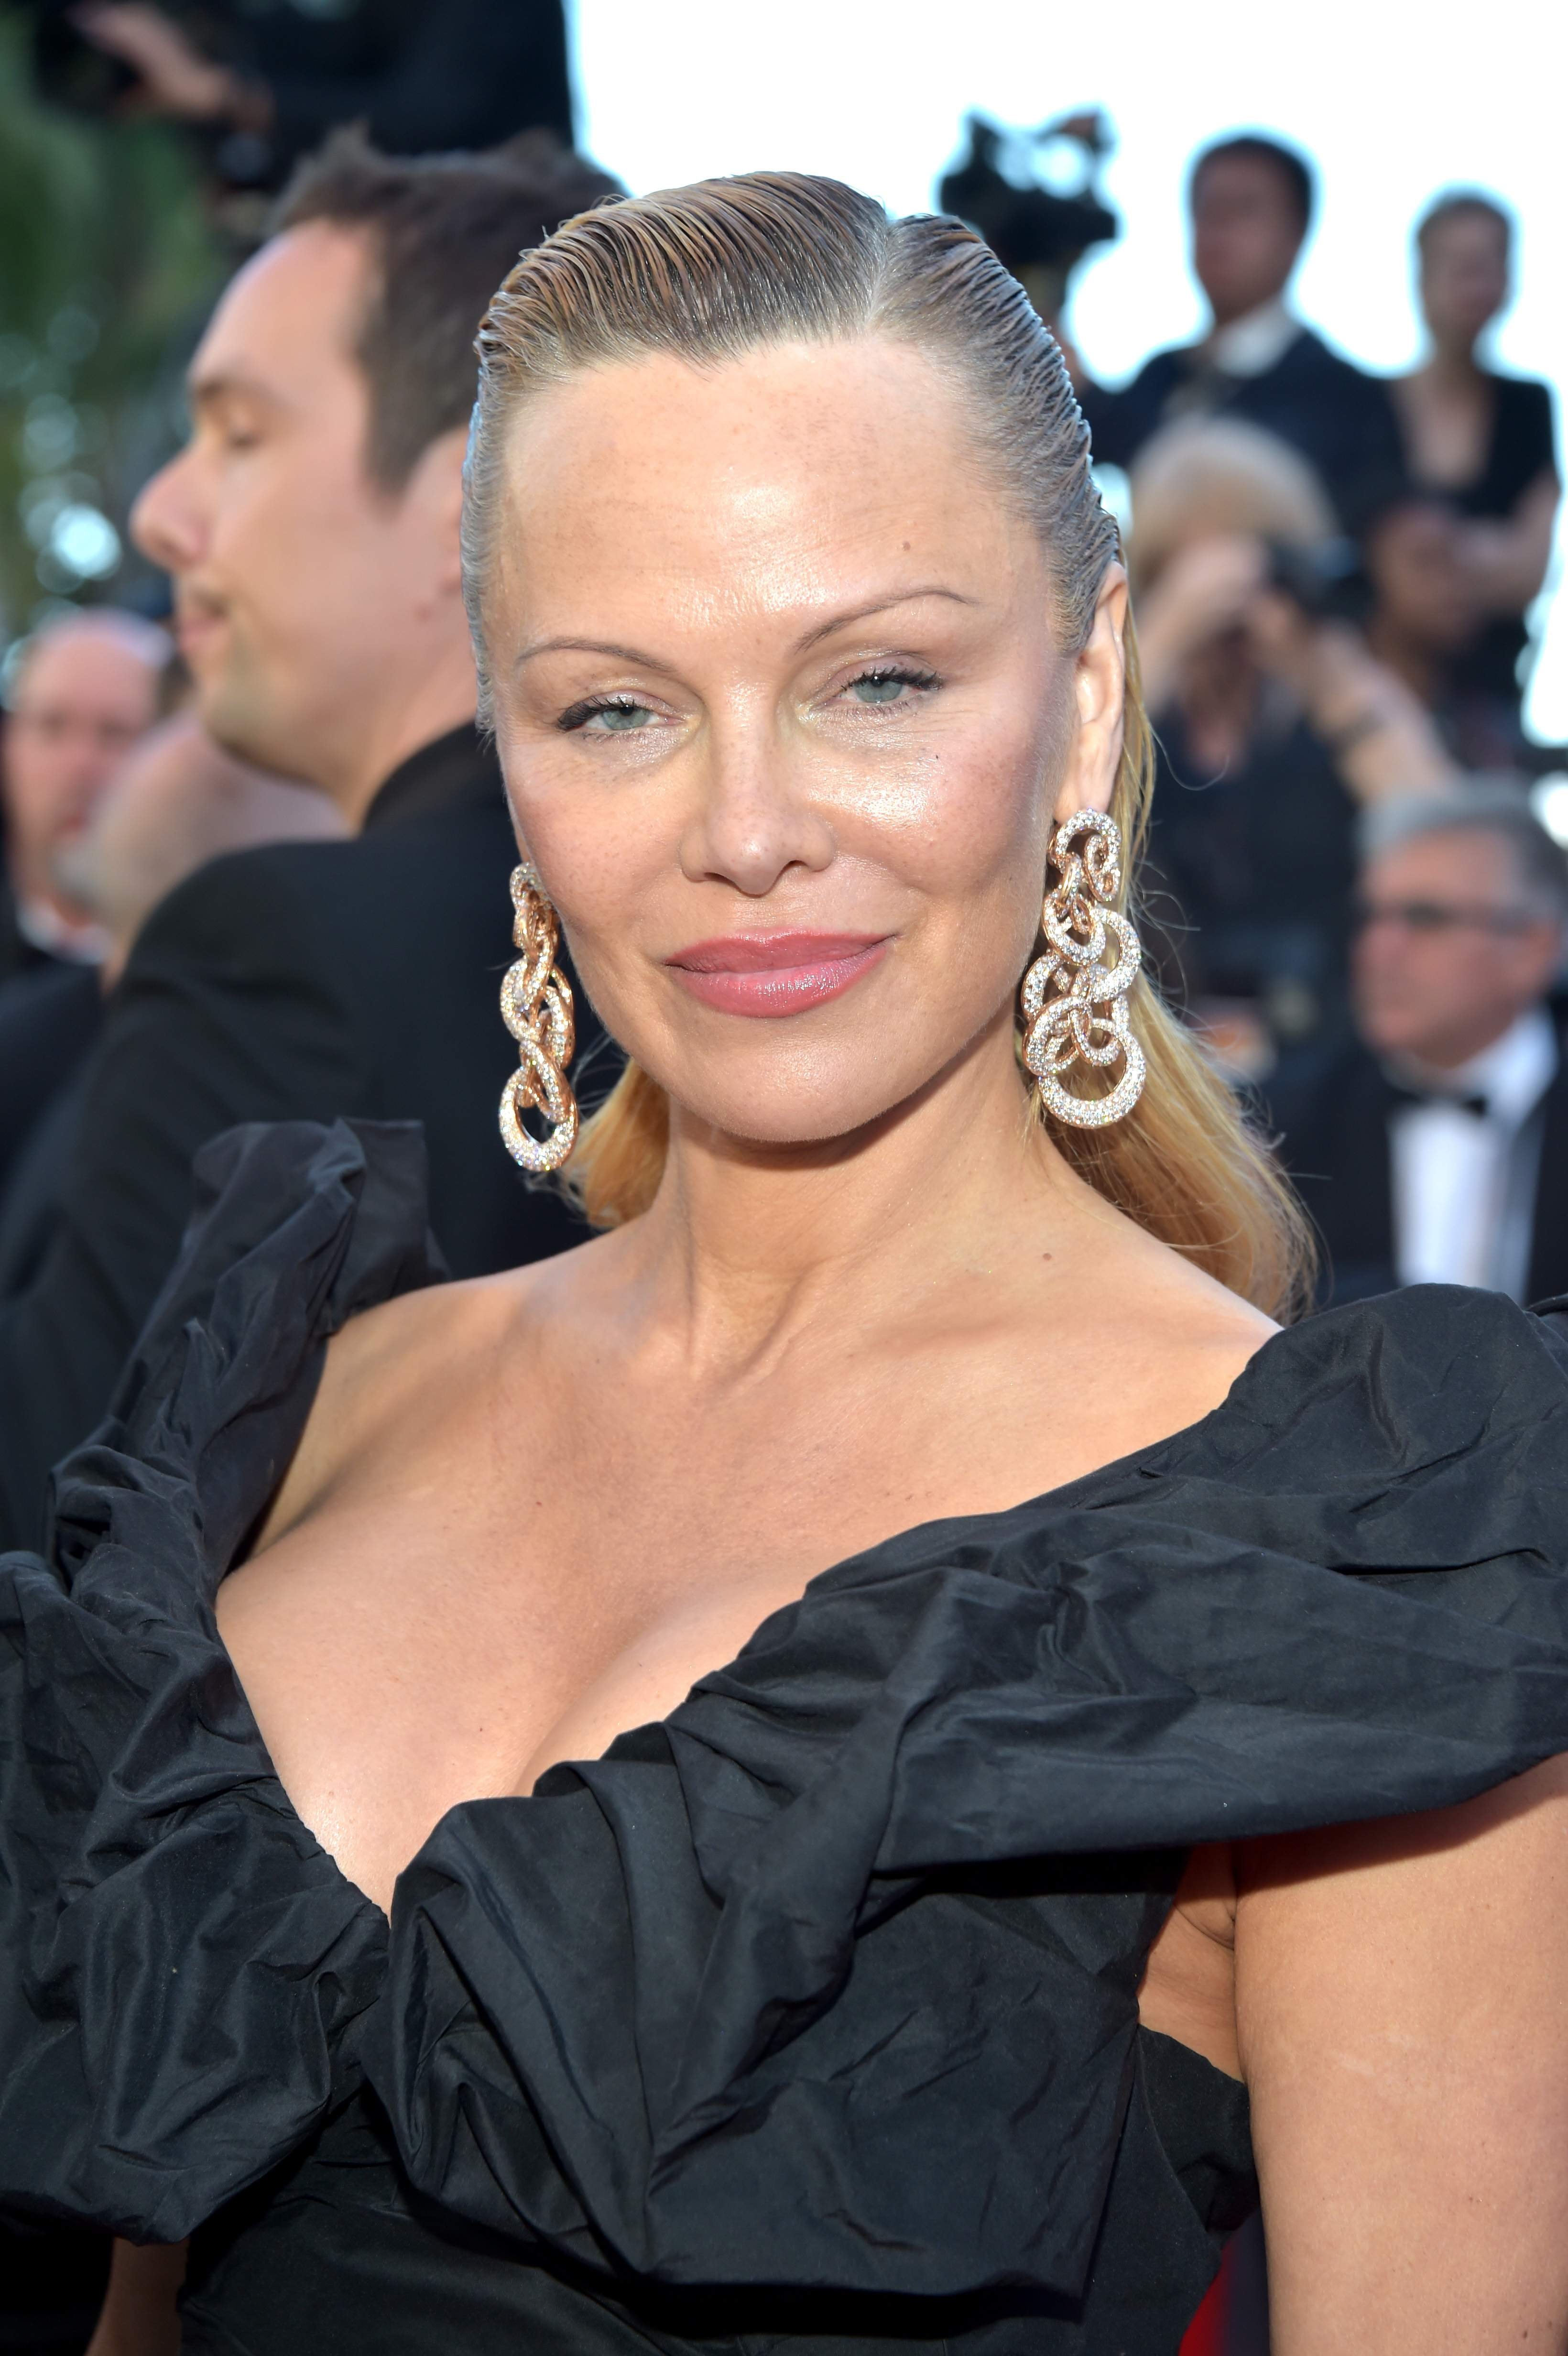 Pamela Anderson Before After Plastic Surgery photo - 1